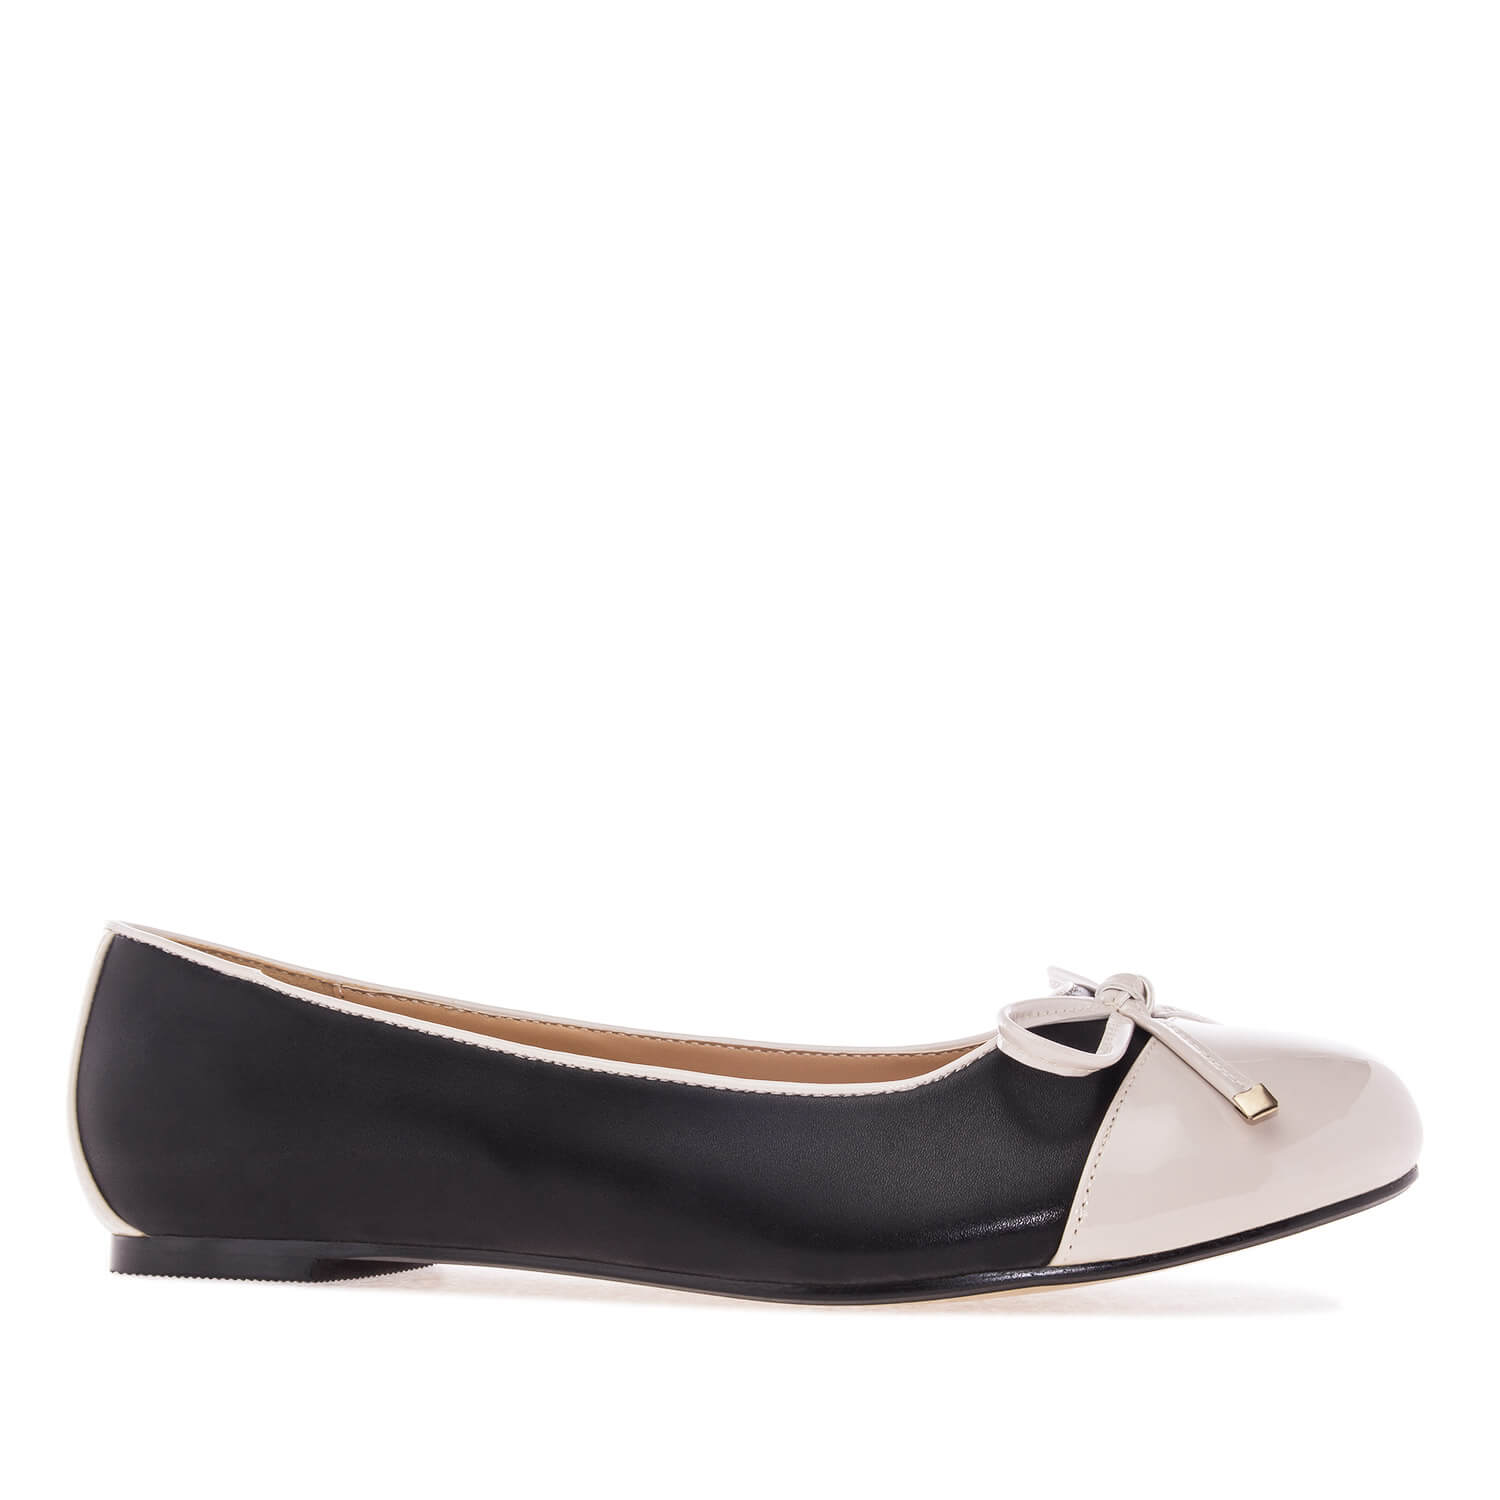 Black & Beige faux Leather Ballet Flats